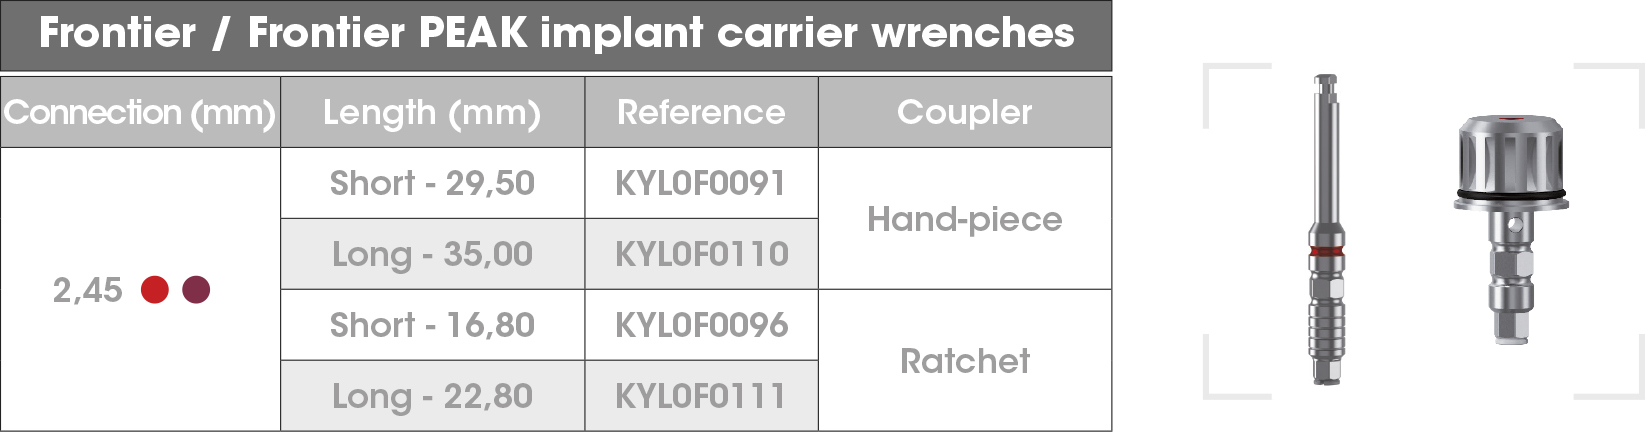 Frontier carrier wrenches